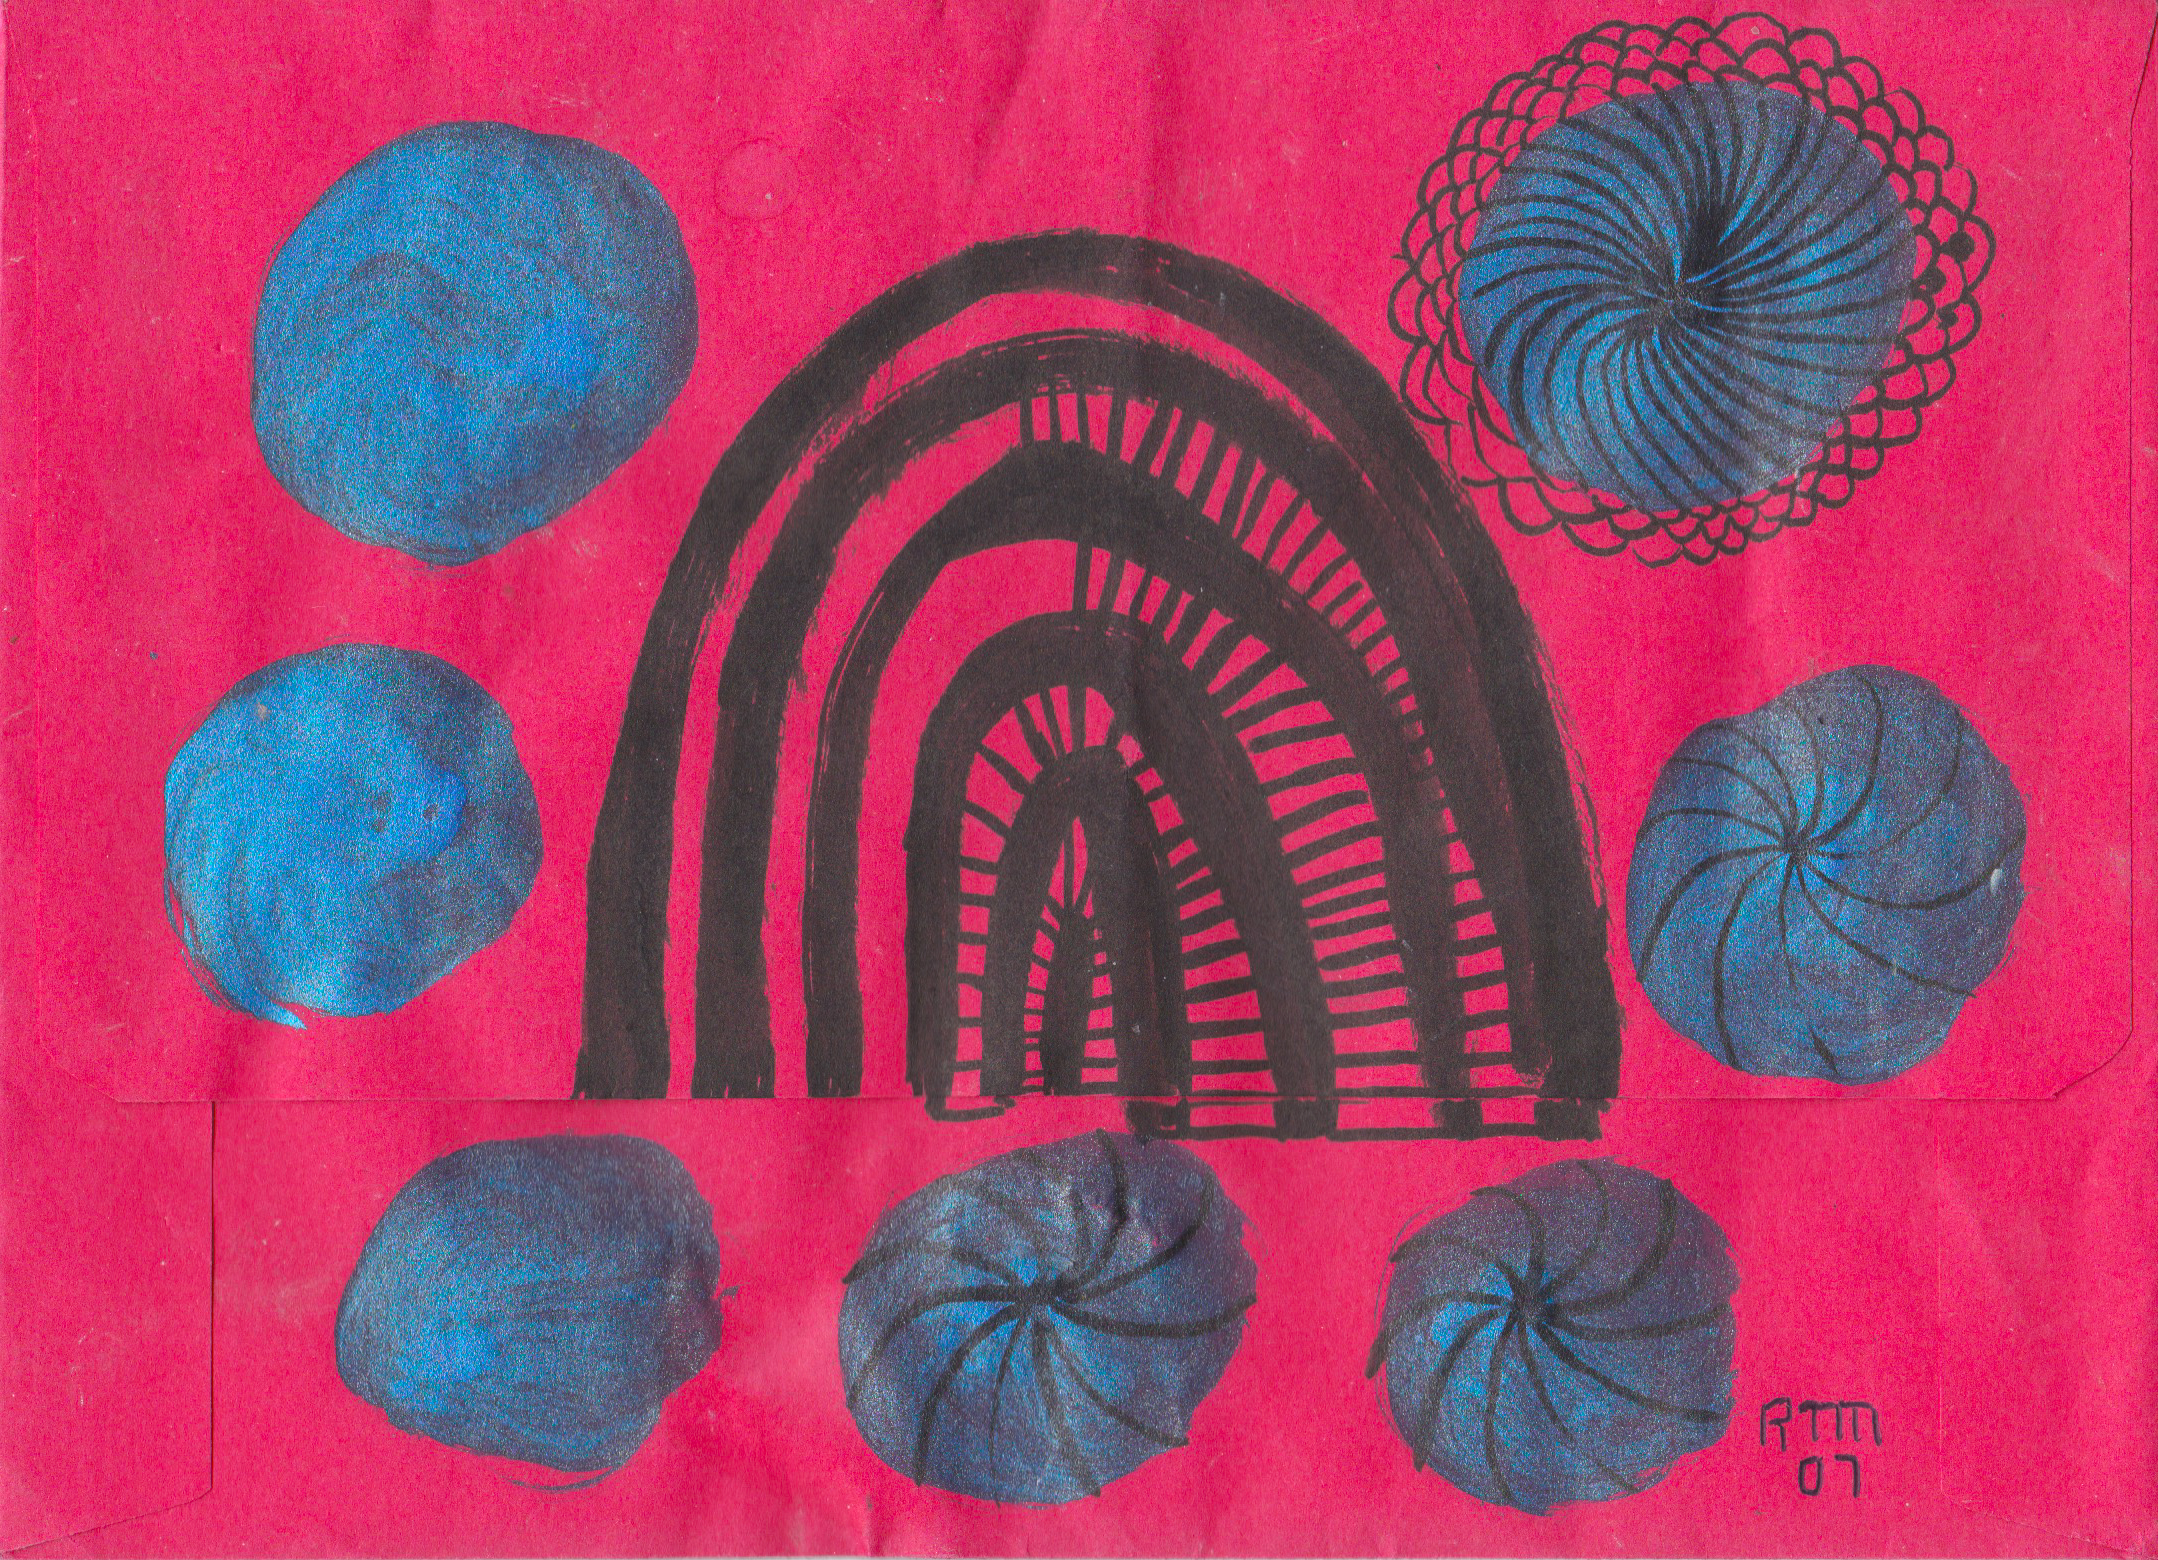 Black Portal surrounded by 4 active and 3 passive blue portals , 2007, acrylic ink and marker pen on red envelope, 5.25 x 7.25 inches